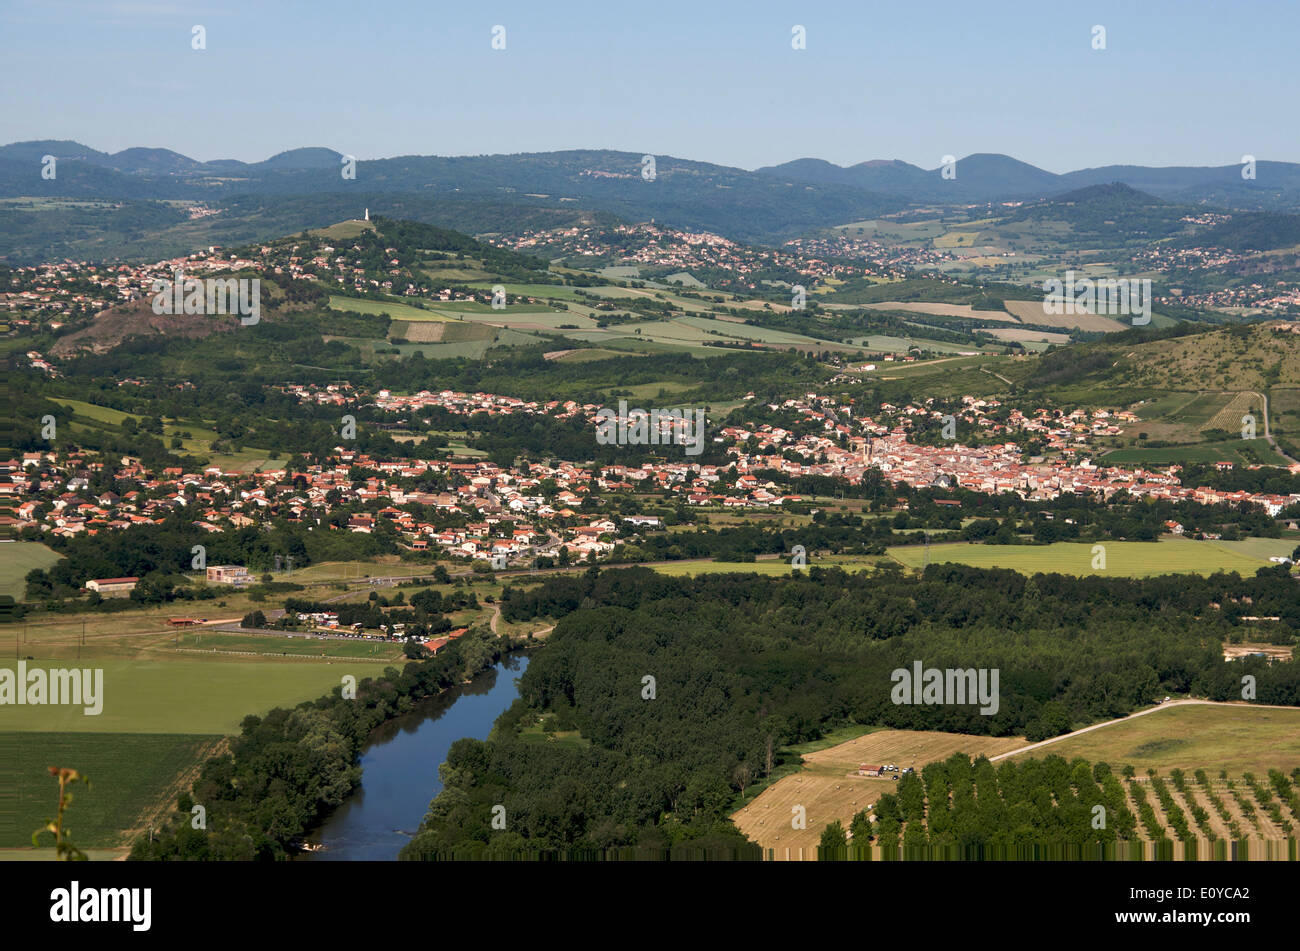 Valley of Allier in Limagne, Puy de Dome, Auvergne, France - Stock Image